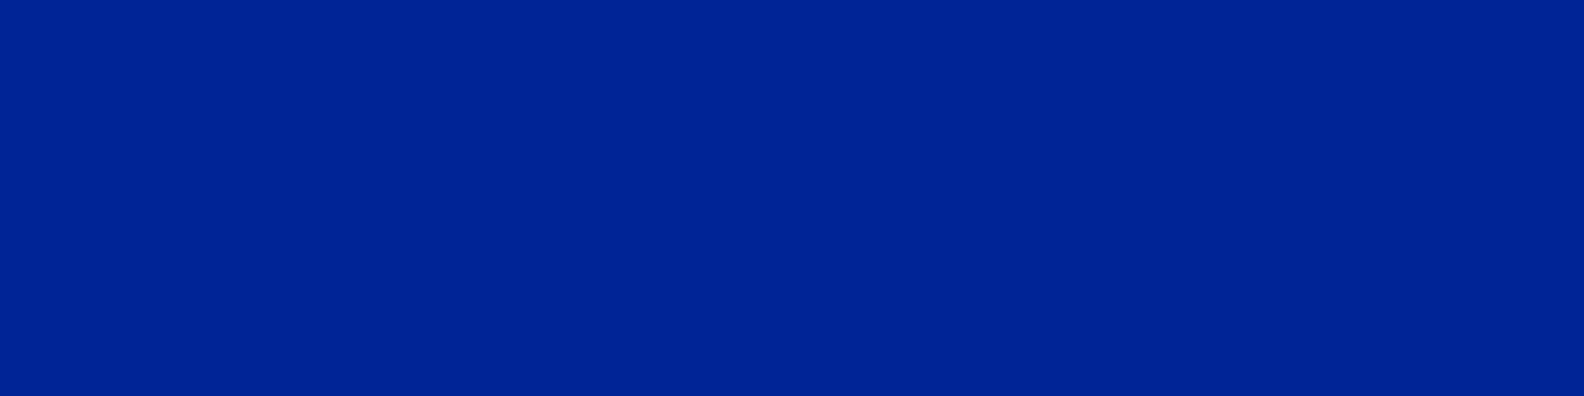 1584x396 Imperial Blue Solid Color Background